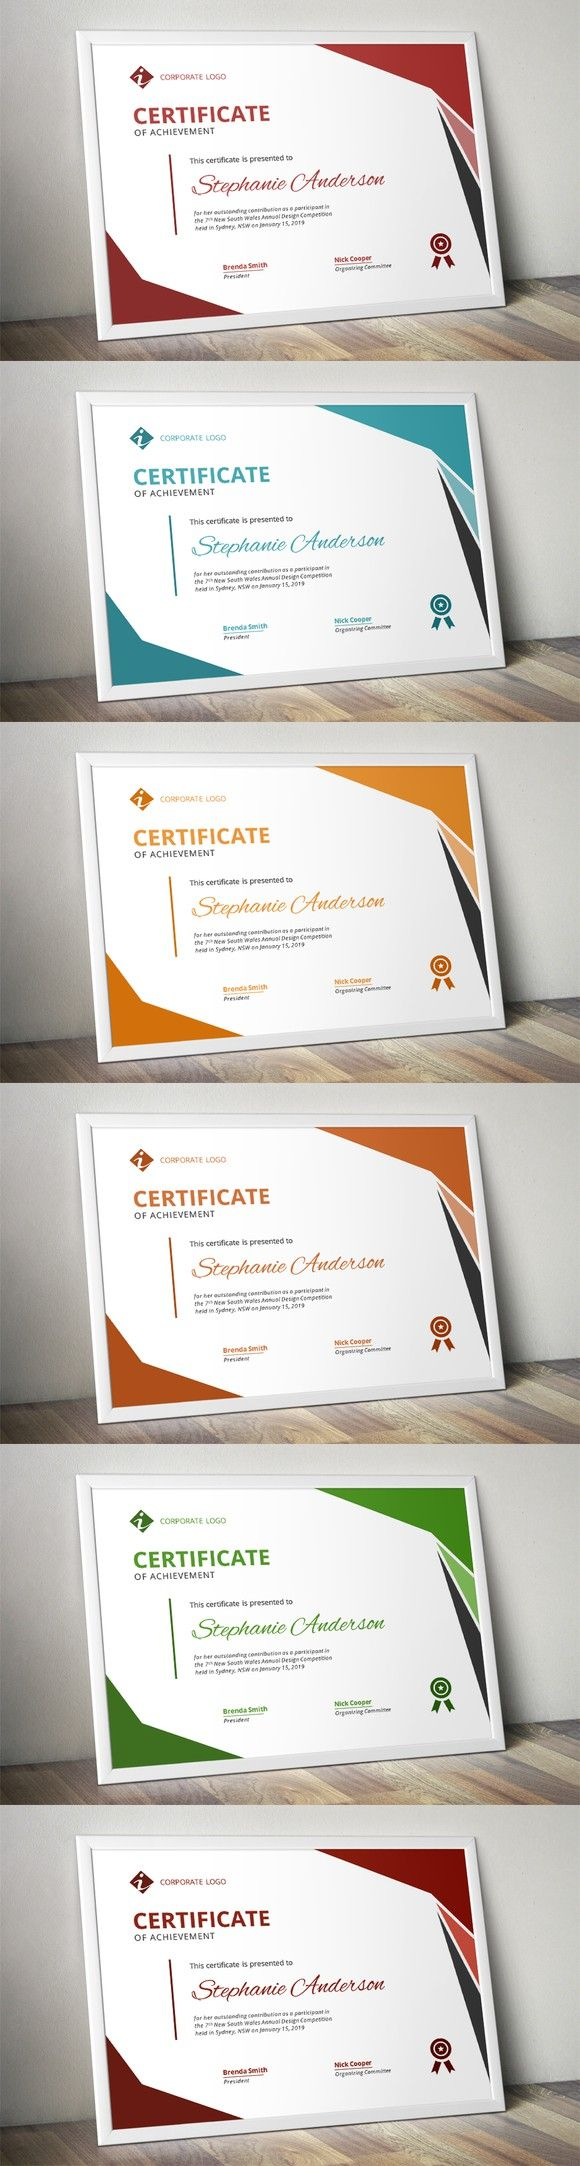 Background Templates For Microsoft Word Awesome 7 Best Certificate Design Images On Pinterest